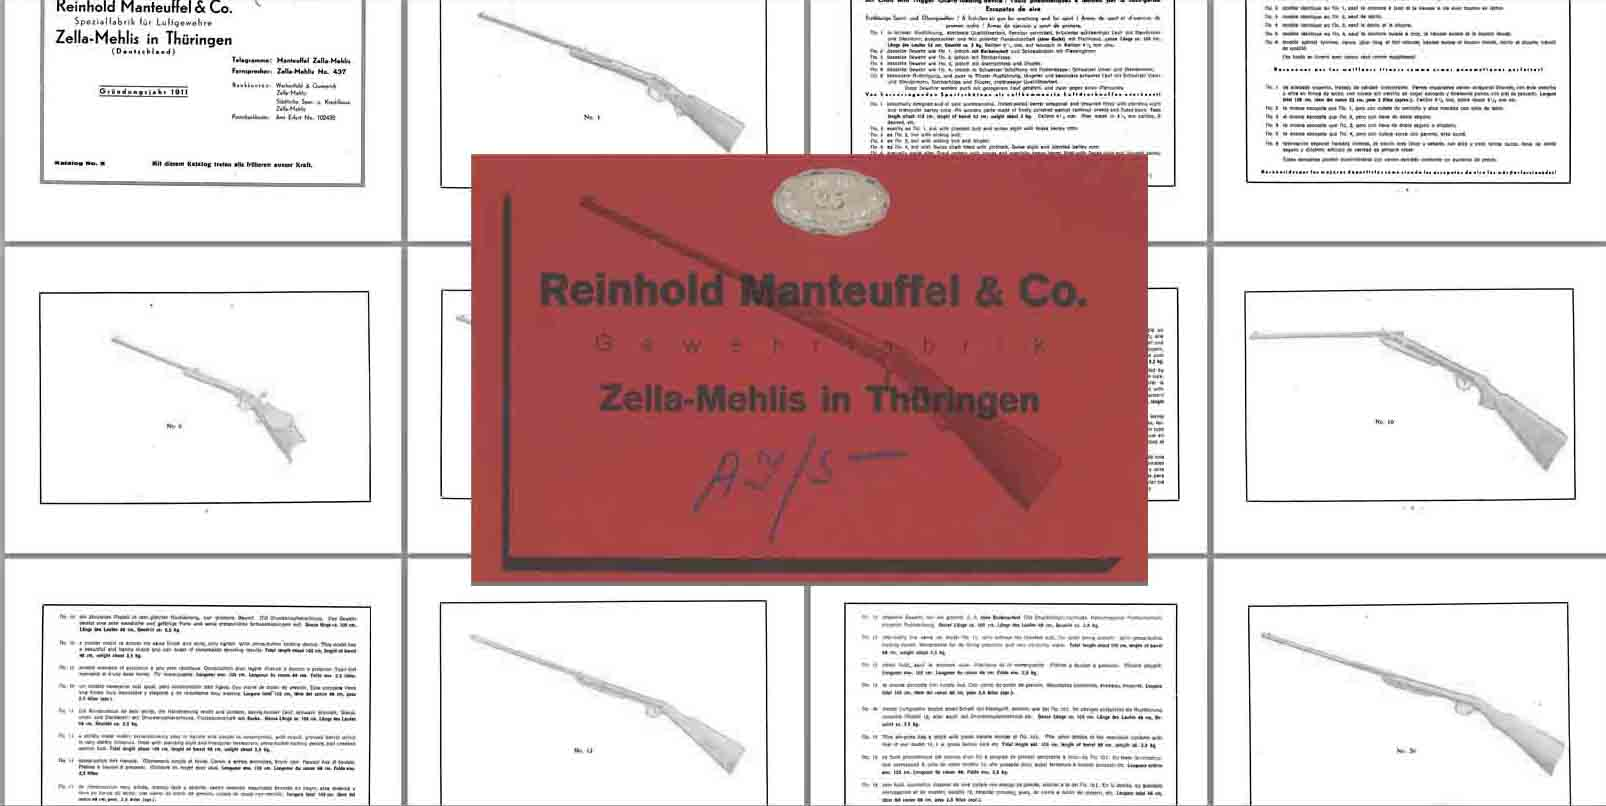 Reinhold Manteuffel & Co. 1936 (Germany)